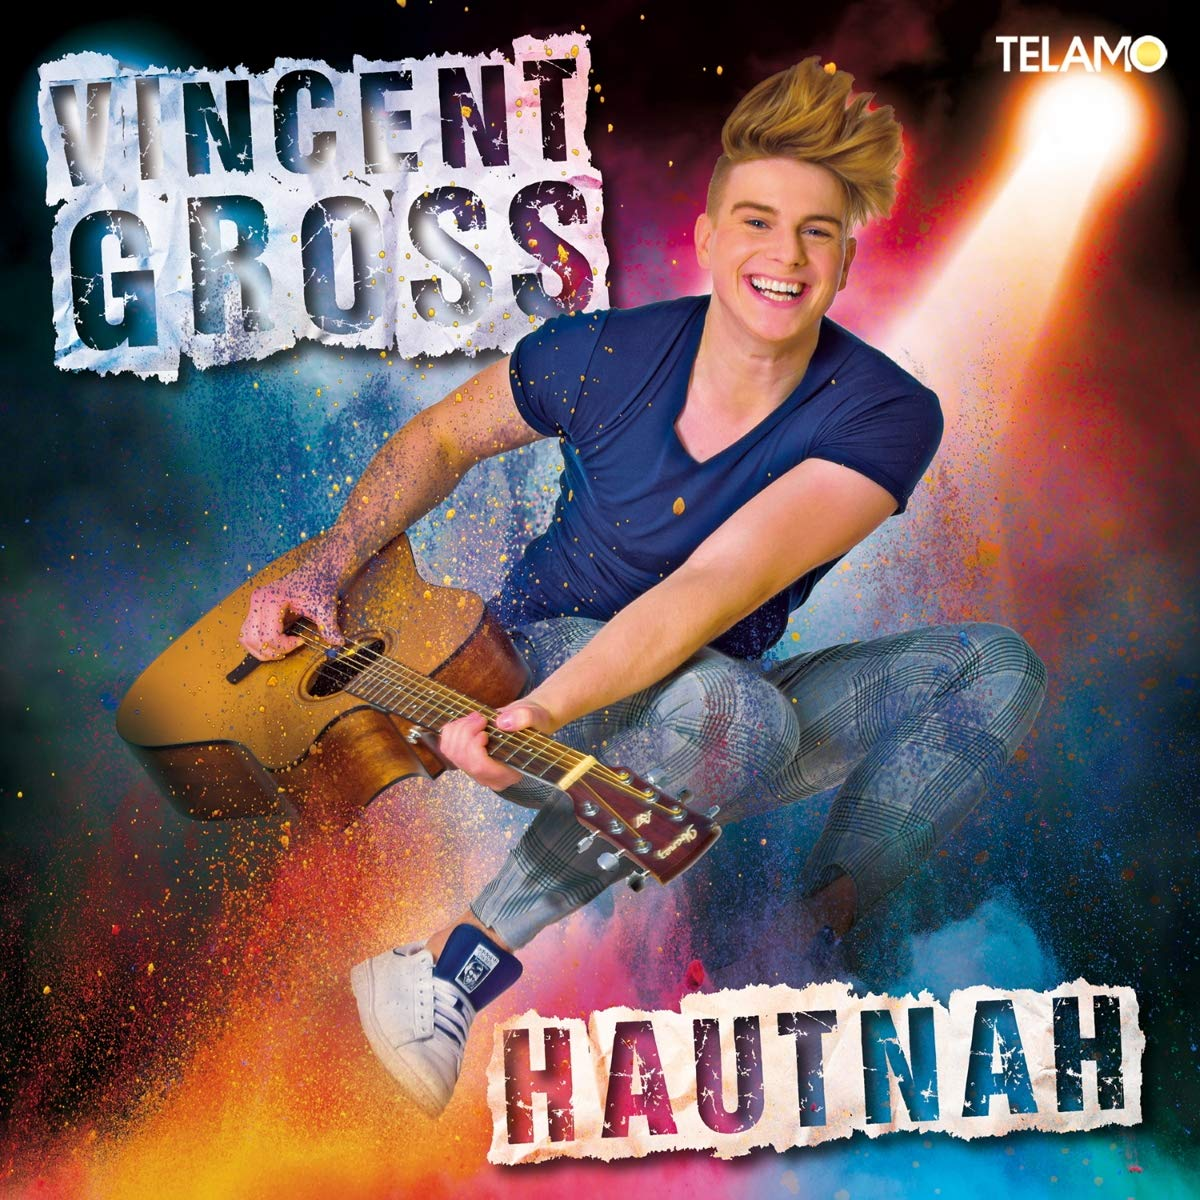 VINCENT GROSS * Hautnah (CD)